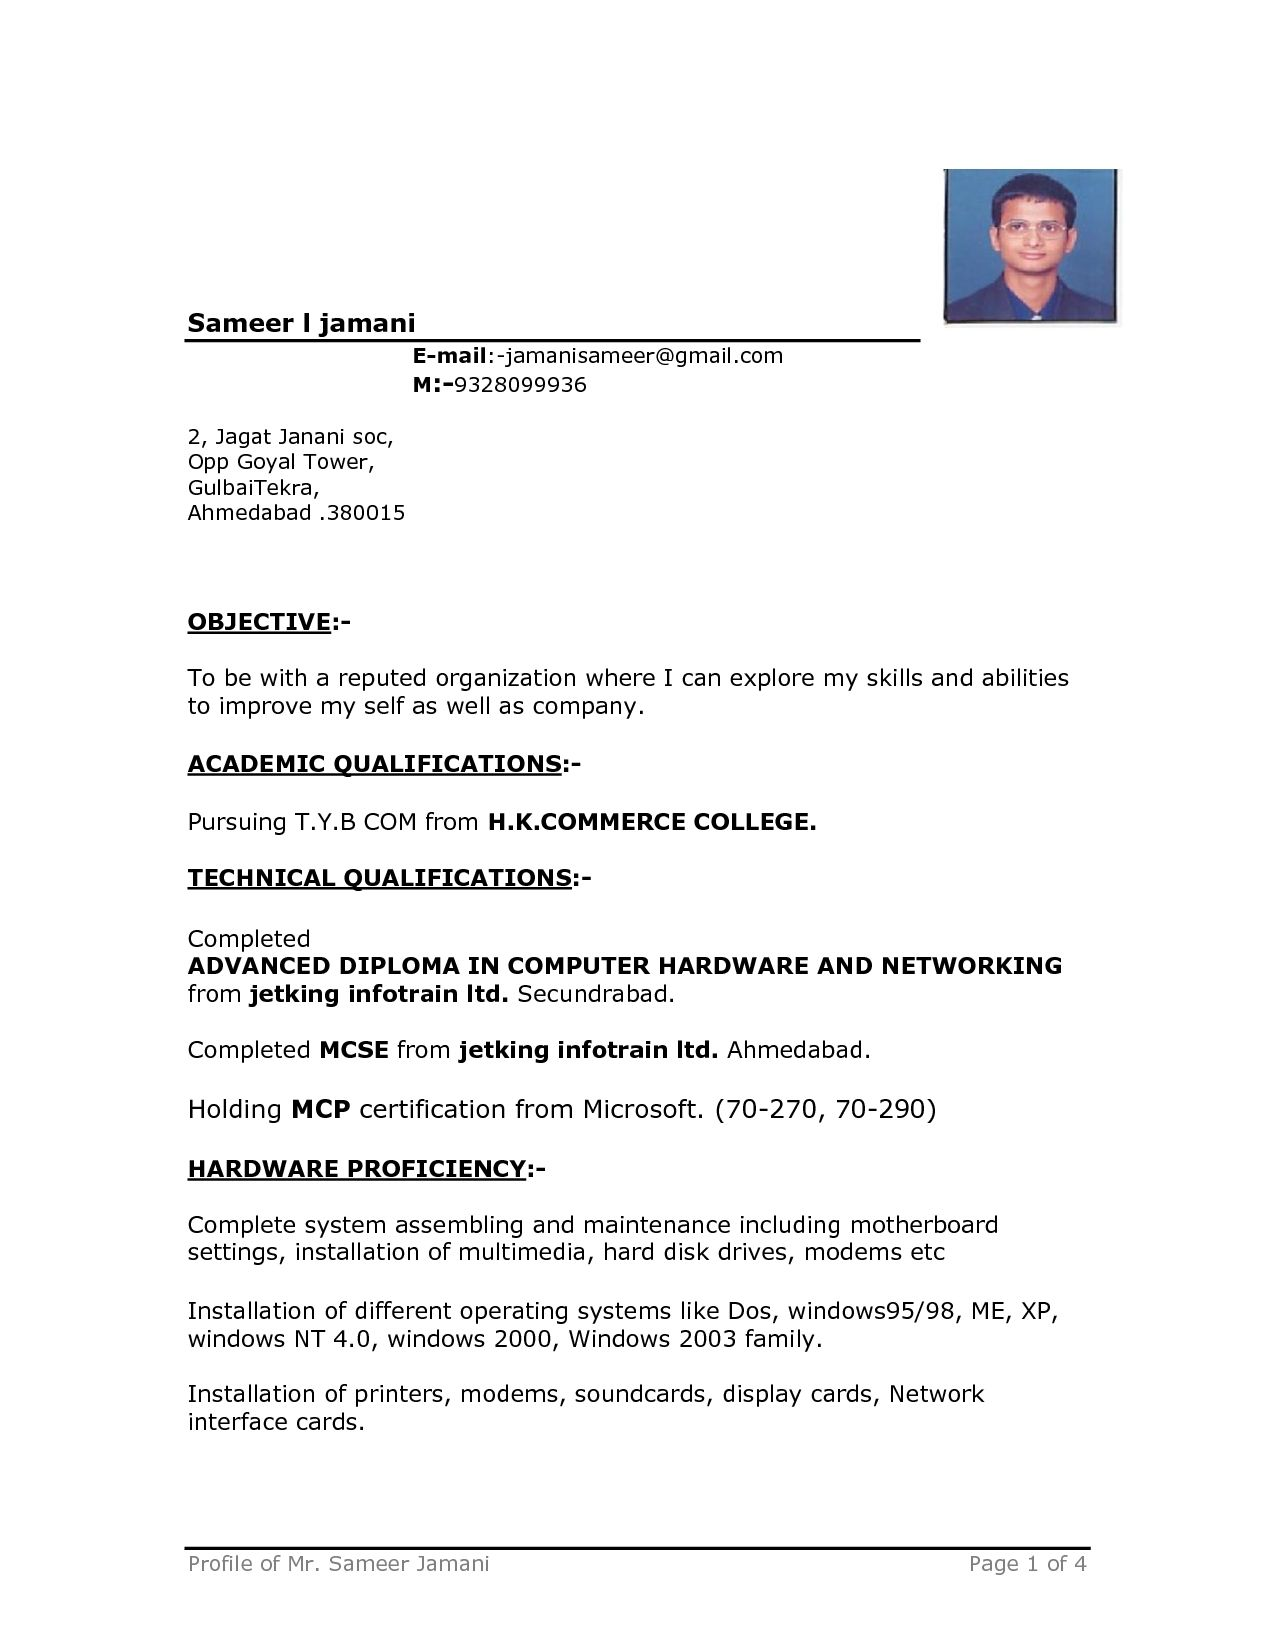 Letter Format In Resume. attractive resume format 7 Formatting A Resume In Word of  in word file Format On Sample 52076ec40